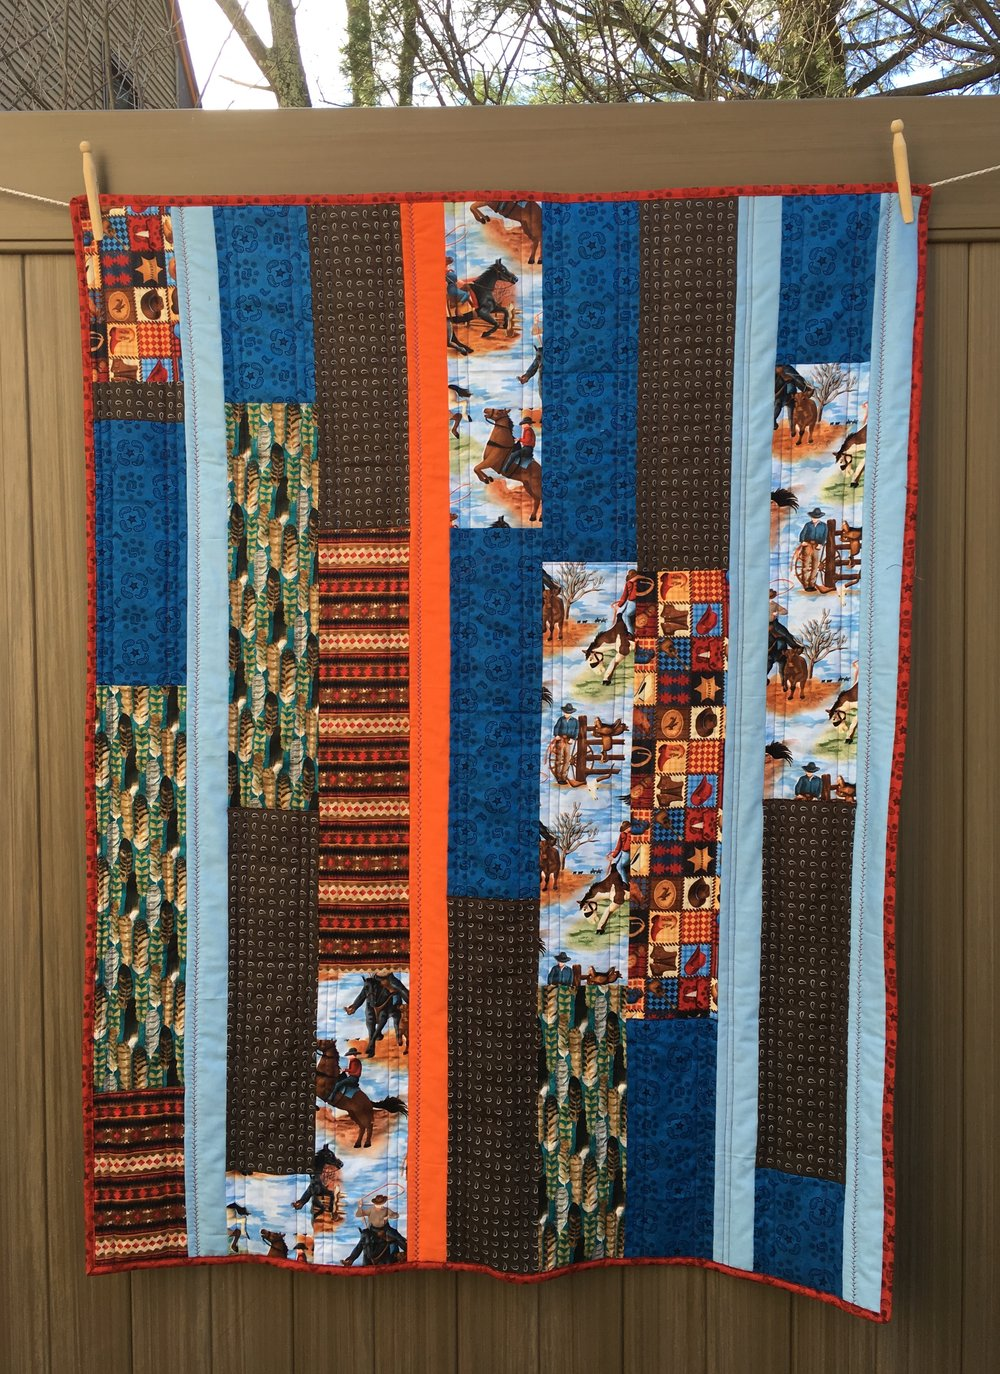 Variation of Modern Textiles' Strip Quilt, approx 42 x 50 inches